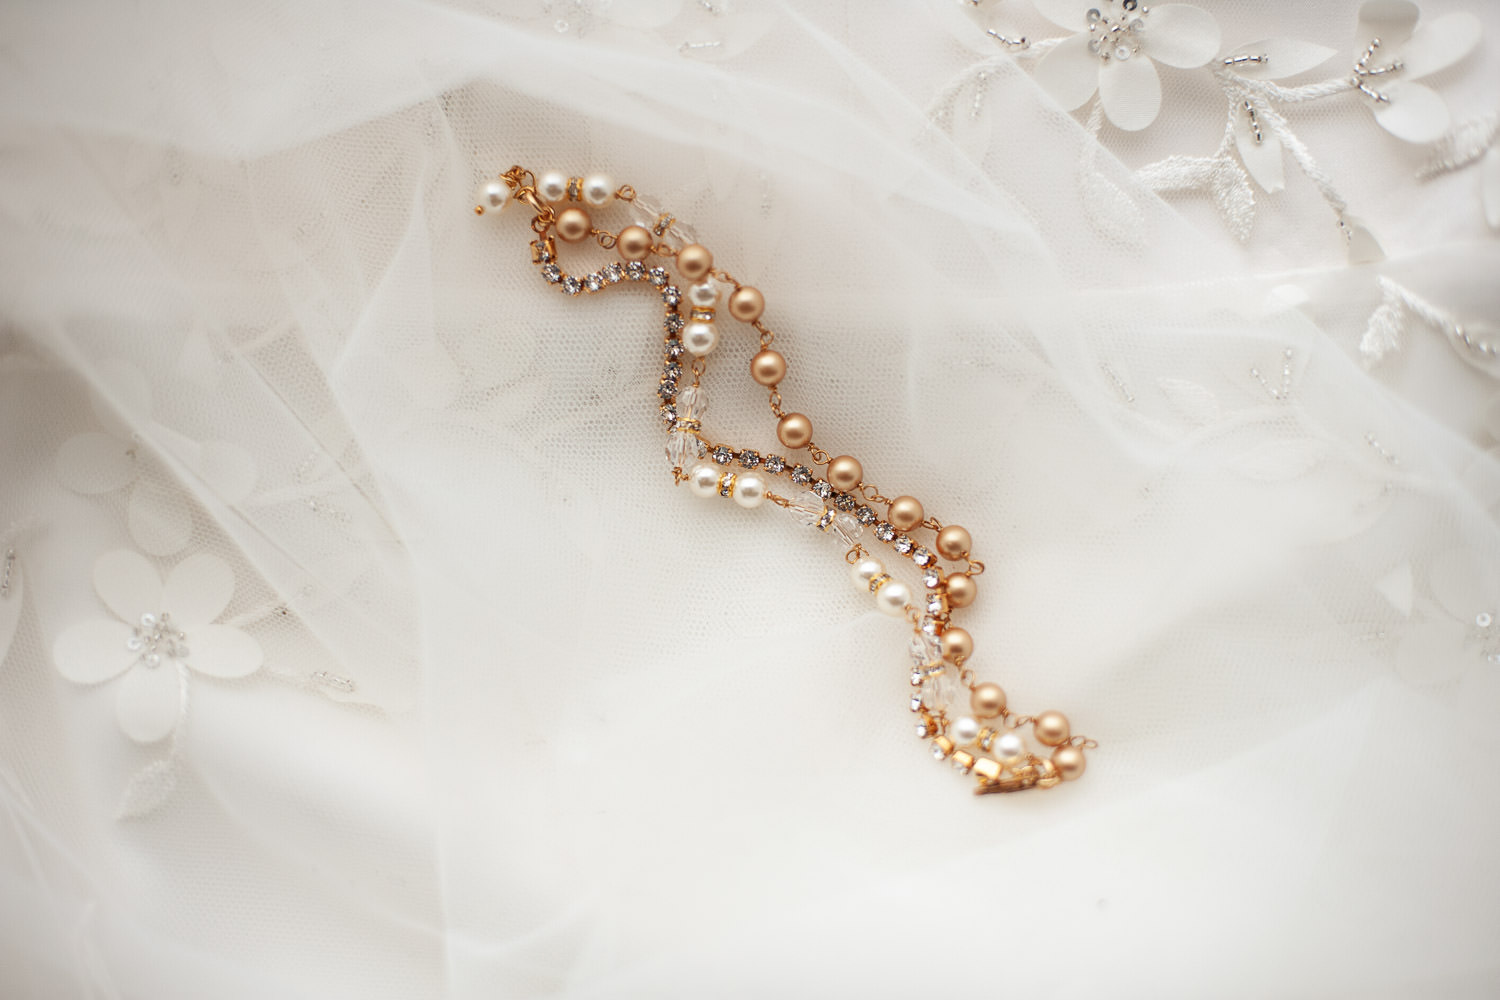 bridal bracelet by Calgary jewelry designer Joanna Bisley captured by Tara Whittaker Photography